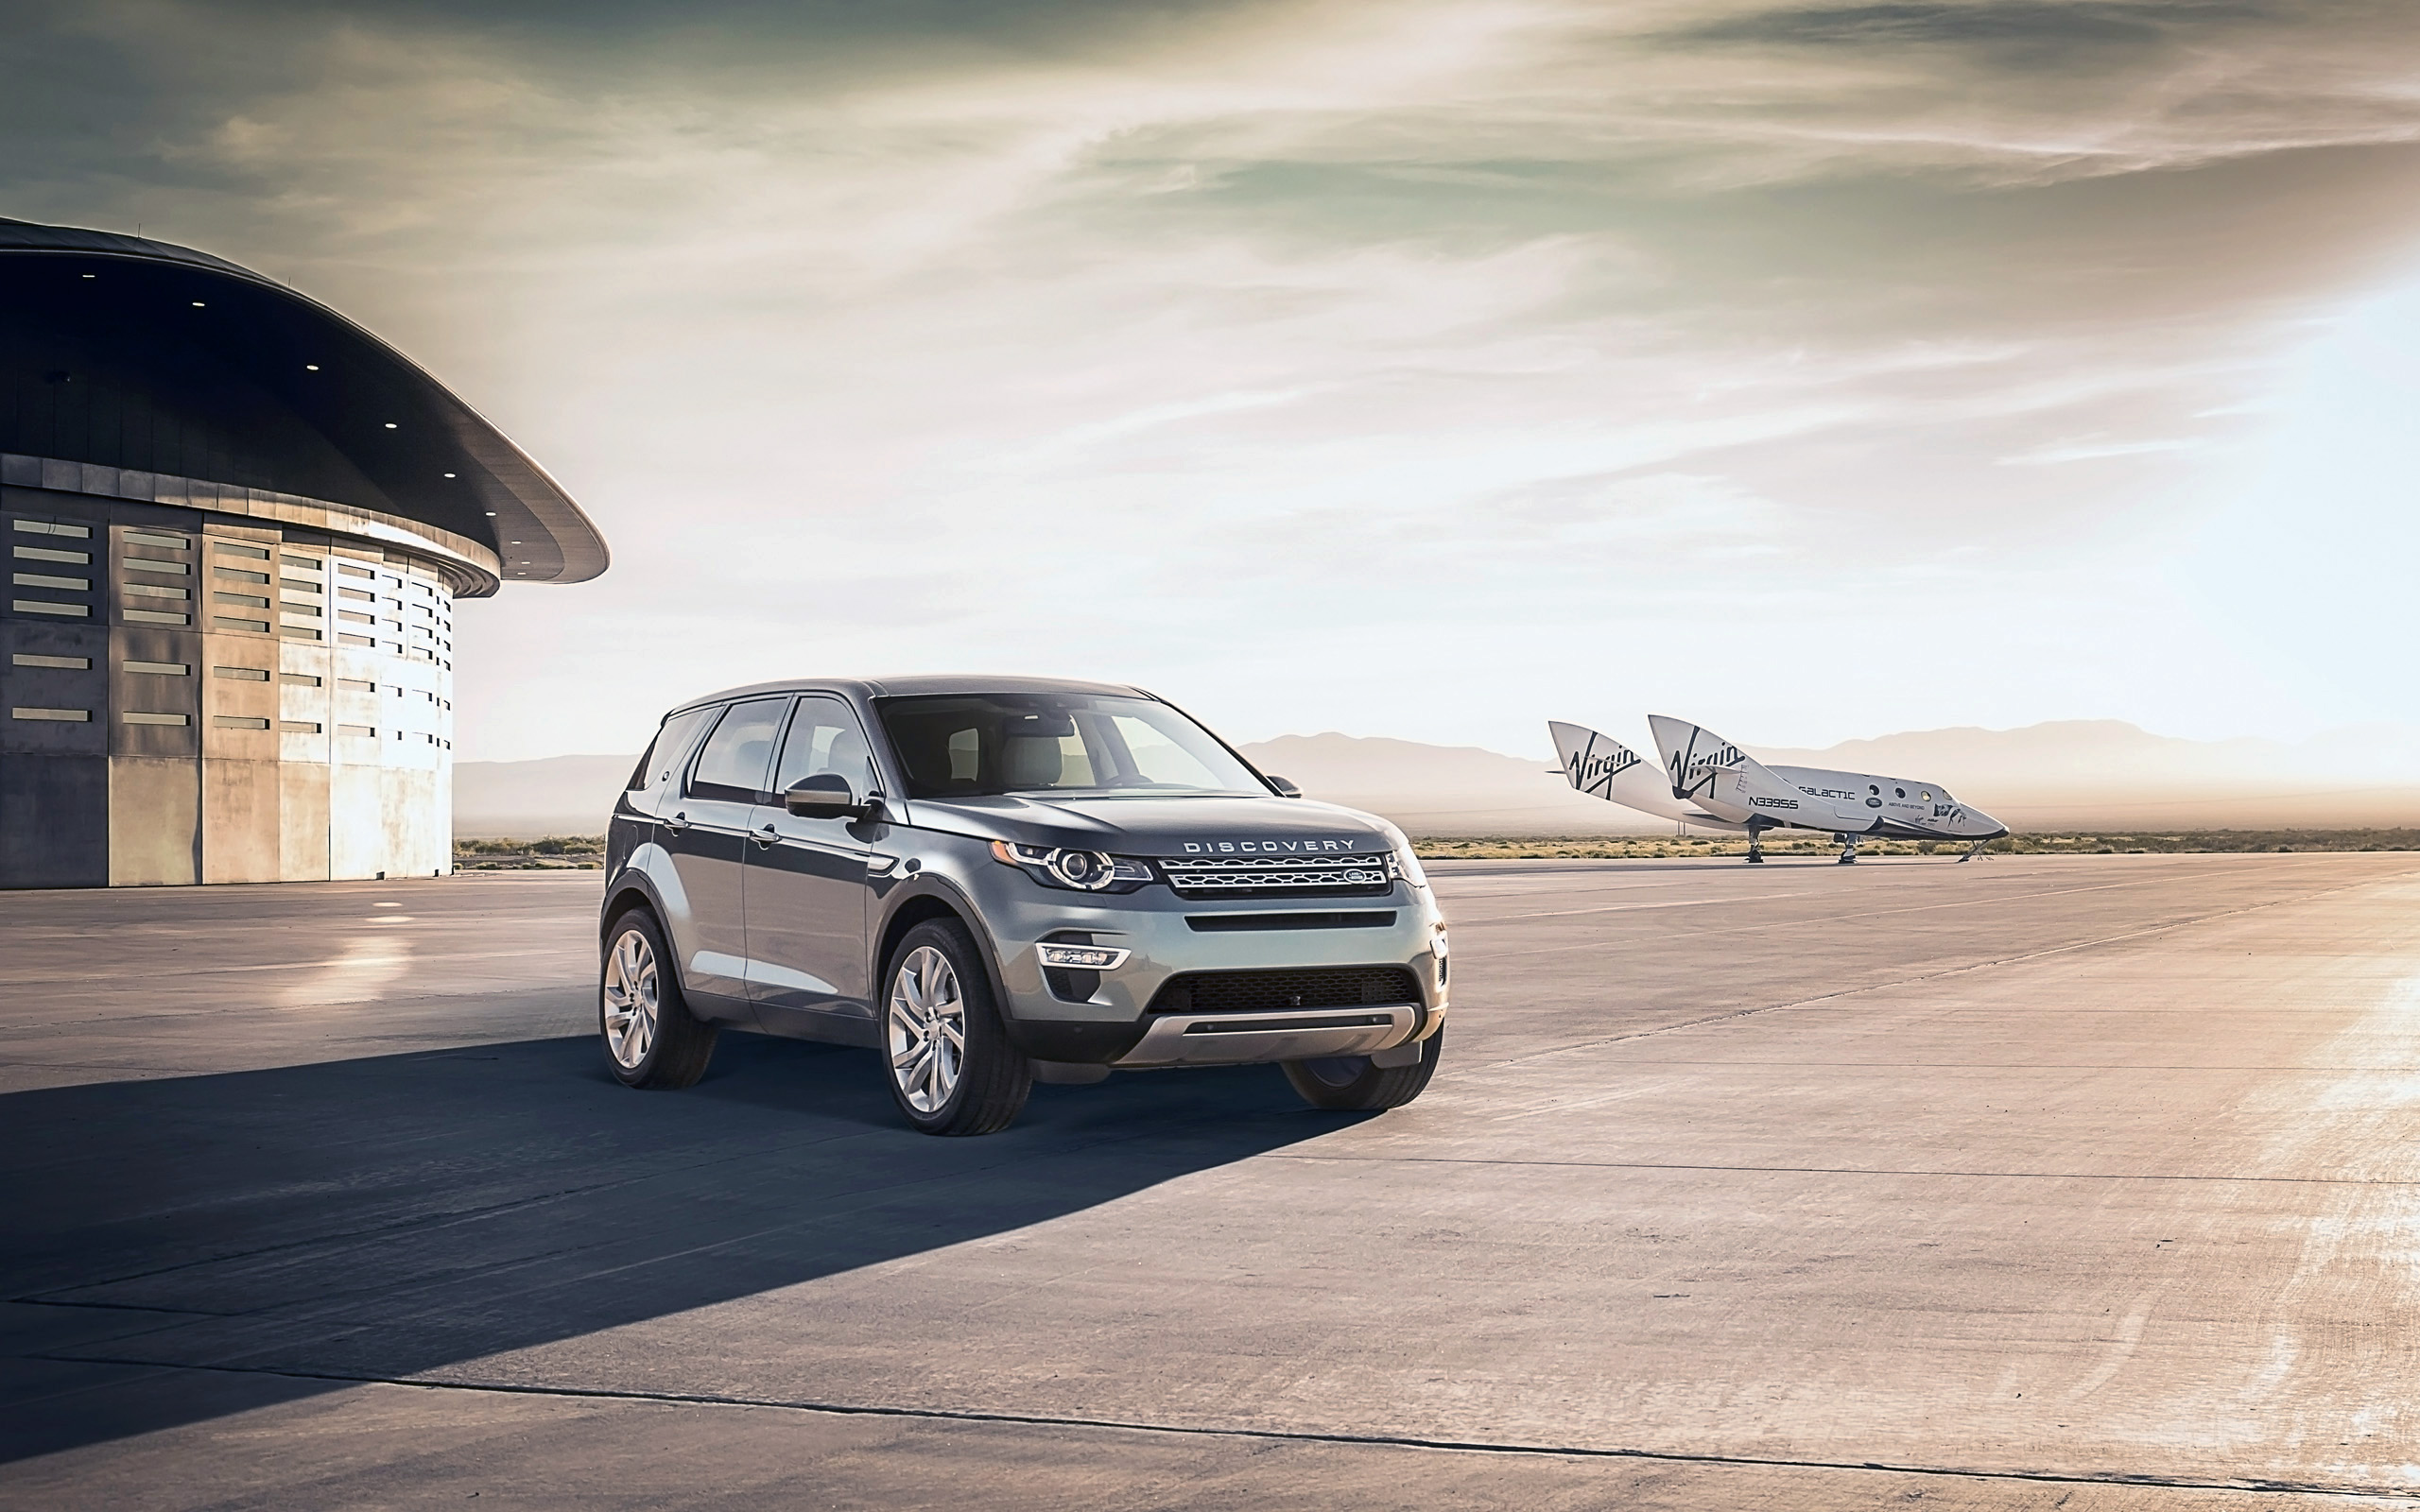 Range Rover Sport Iphone Wallpaper: 2015 Land Rover Discovery Sport 4 Wallpaper